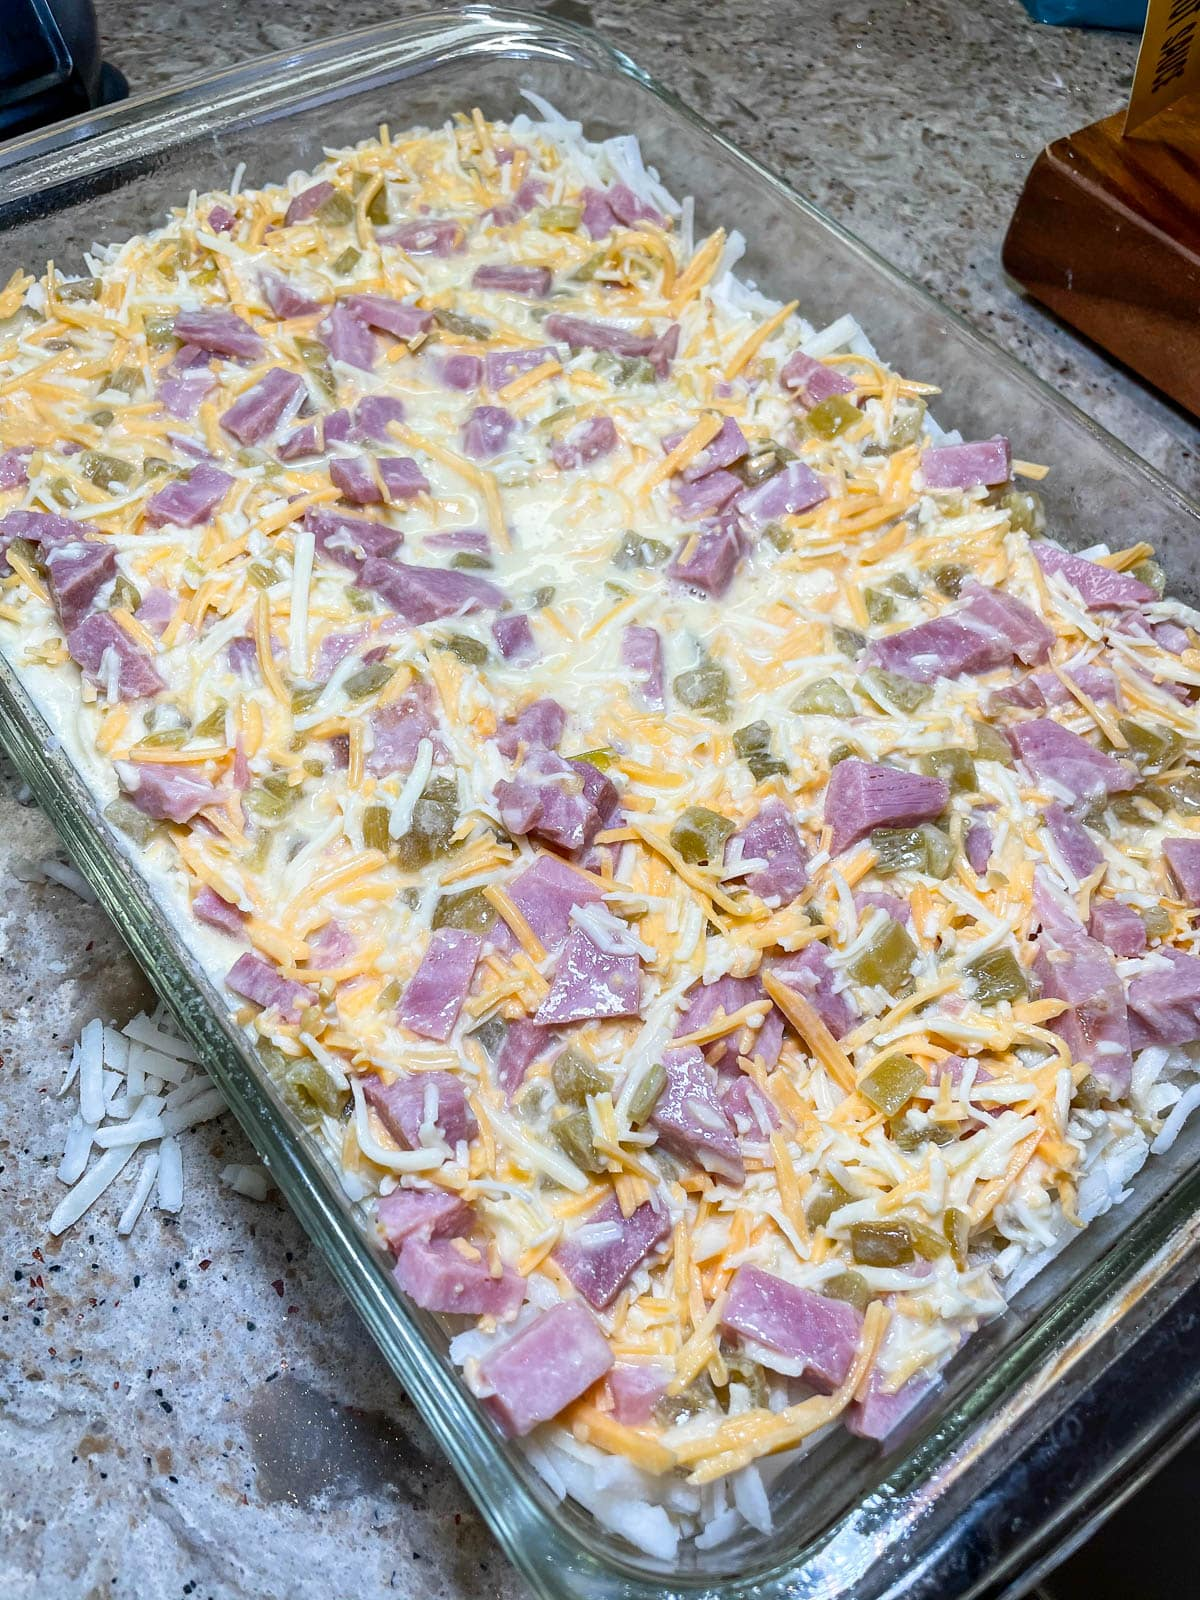 breakfast casserole ready for the oven